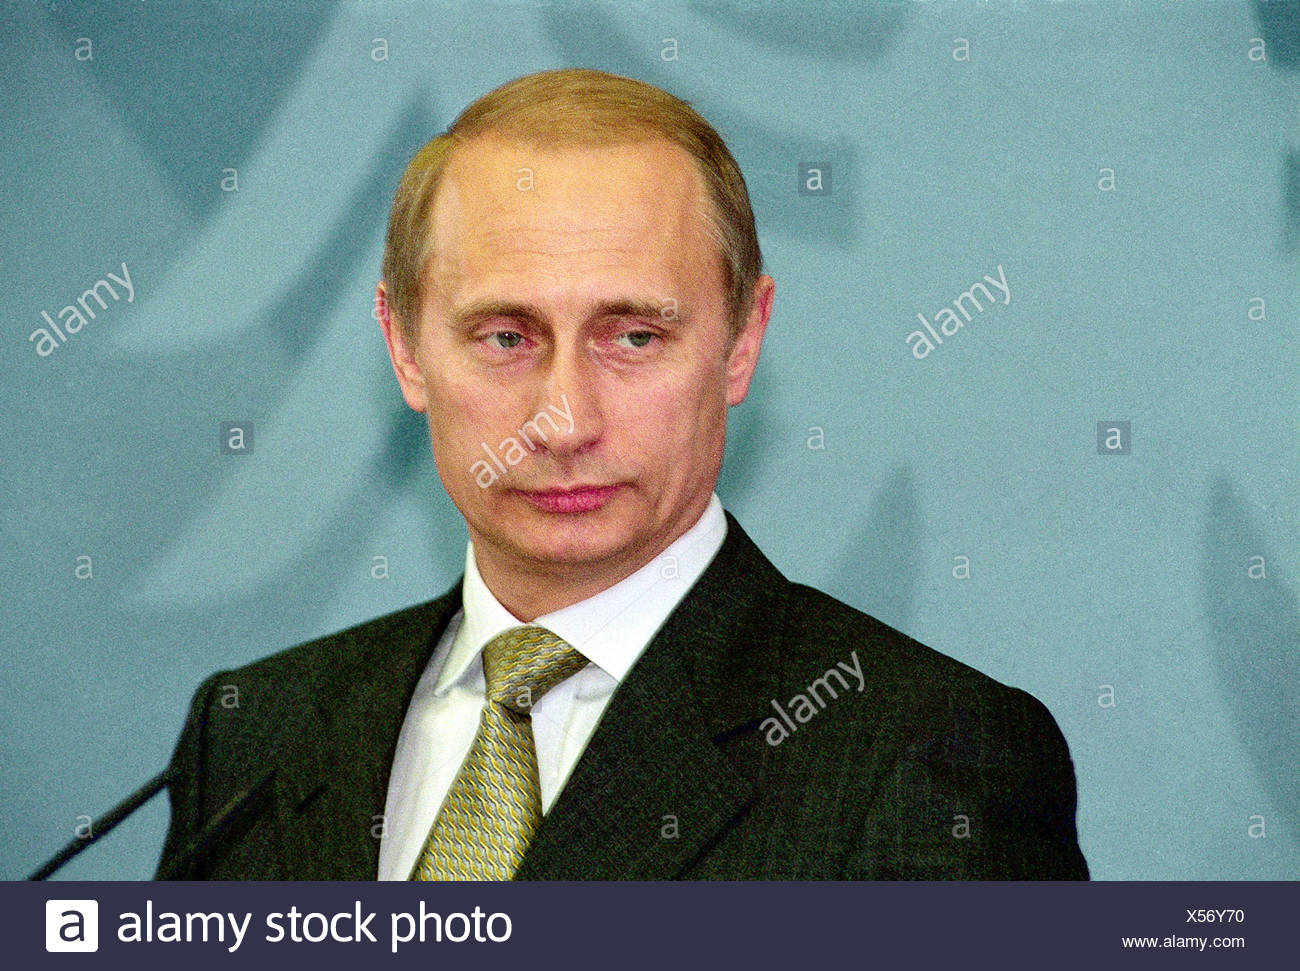 Putin, Vladimir, * 7.10.1952, Russian politician, president of Russia since 2000, portrait, visiting Berlin, 15.6.2000, Additional-Rights-Clearances-NA - Stock Image